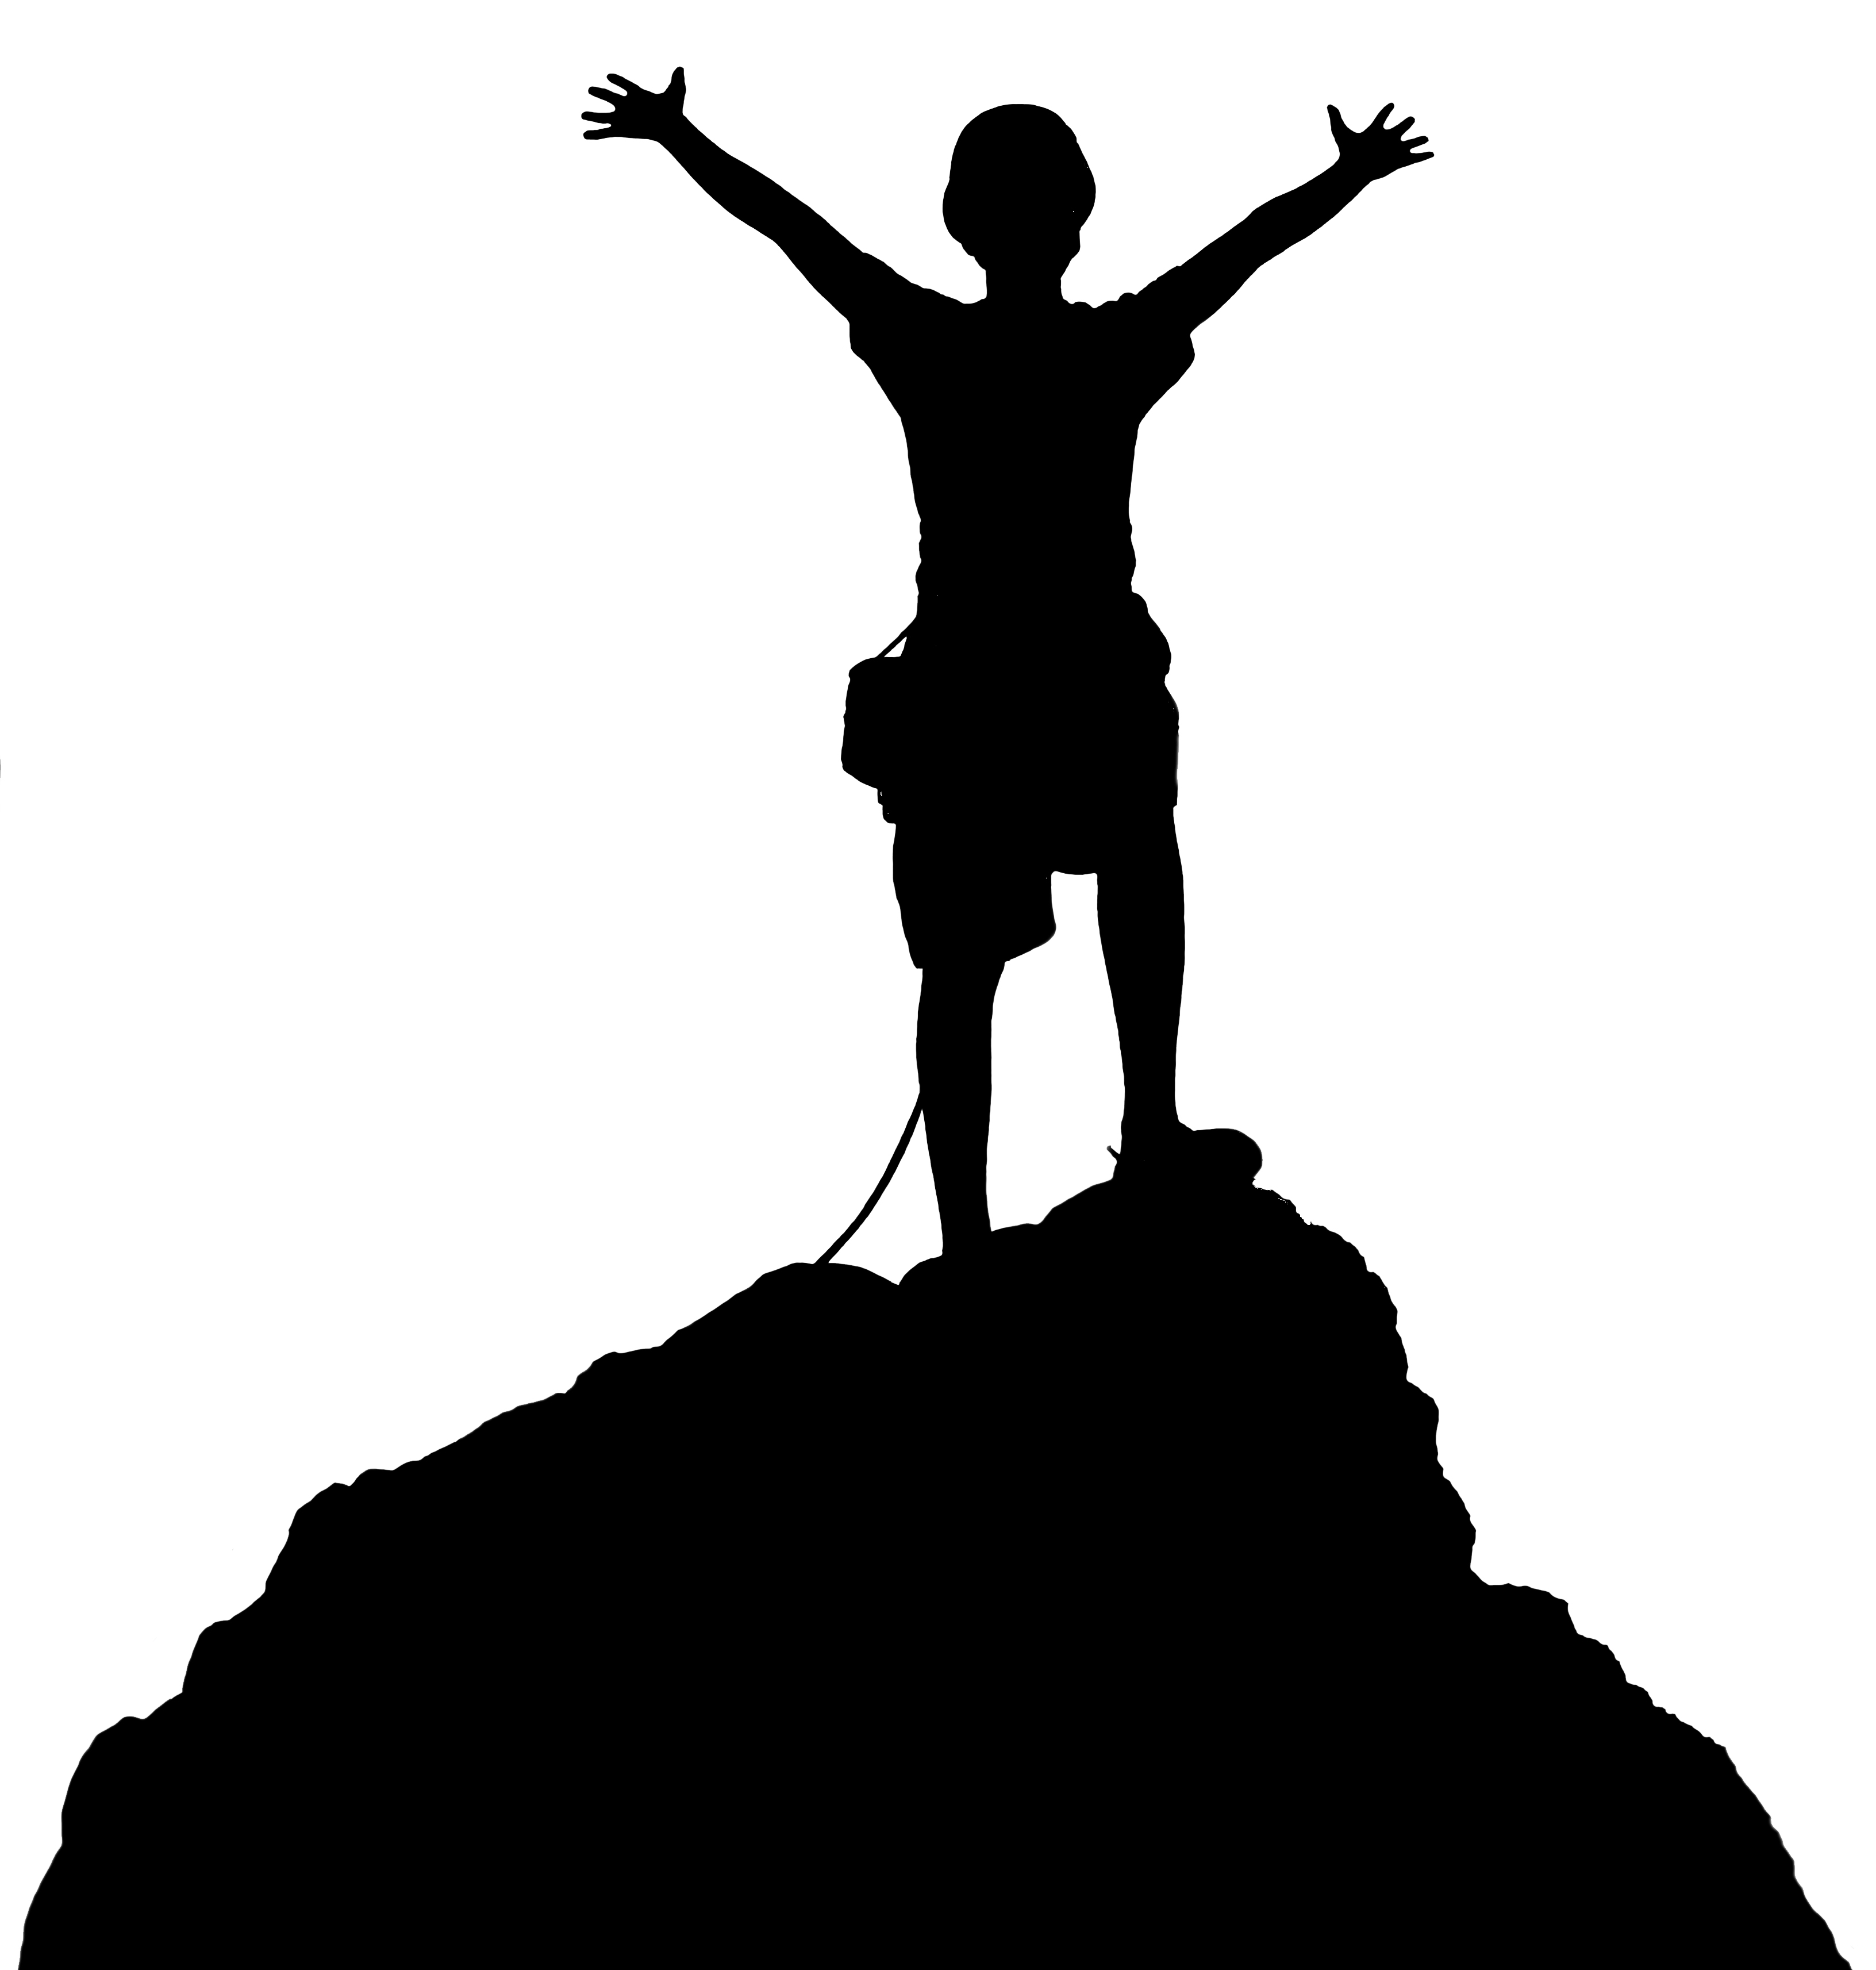 Climbing clipart #1, Download drawings